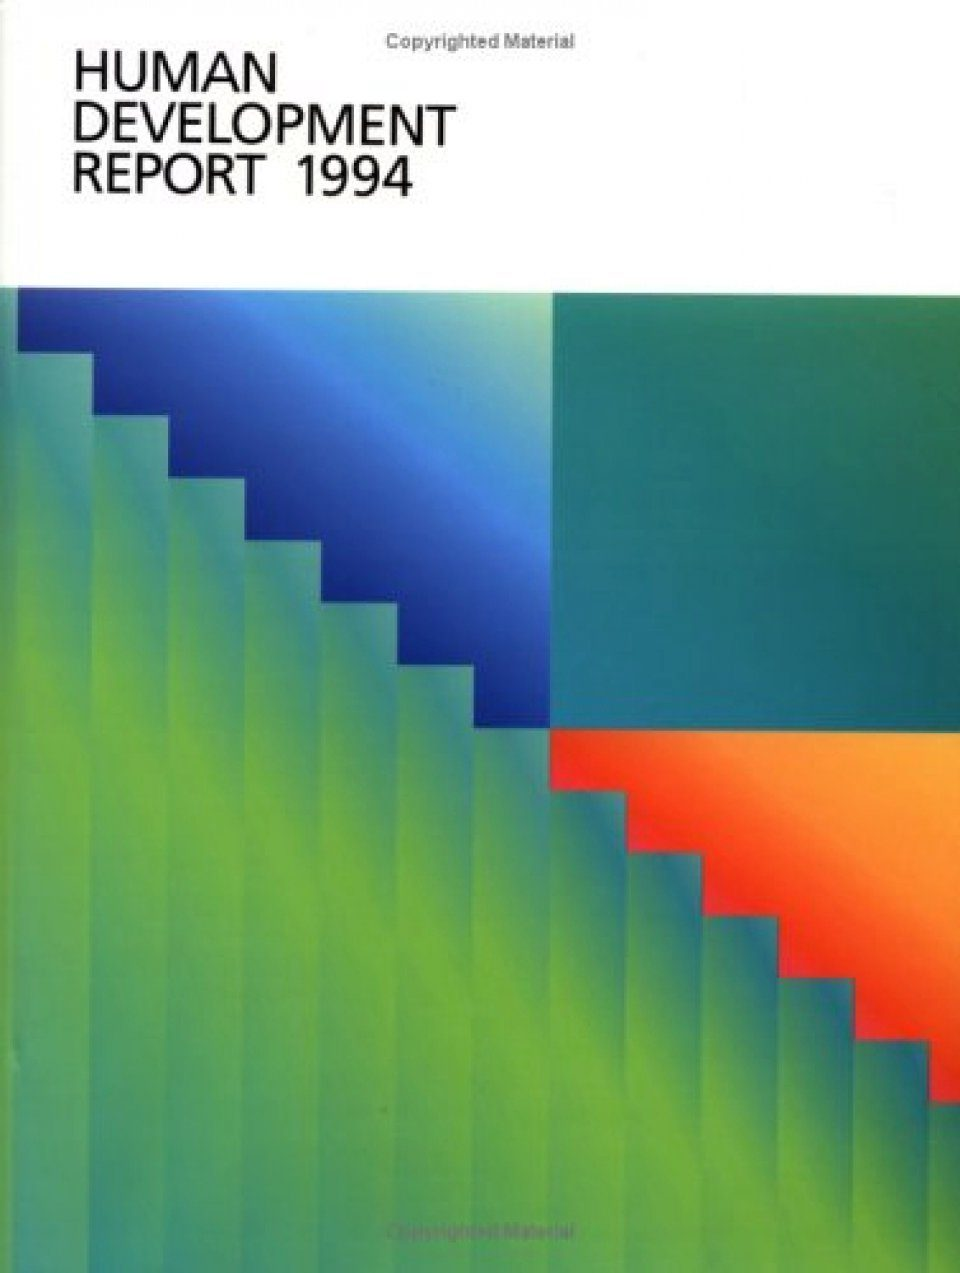 Human Development Report 1994